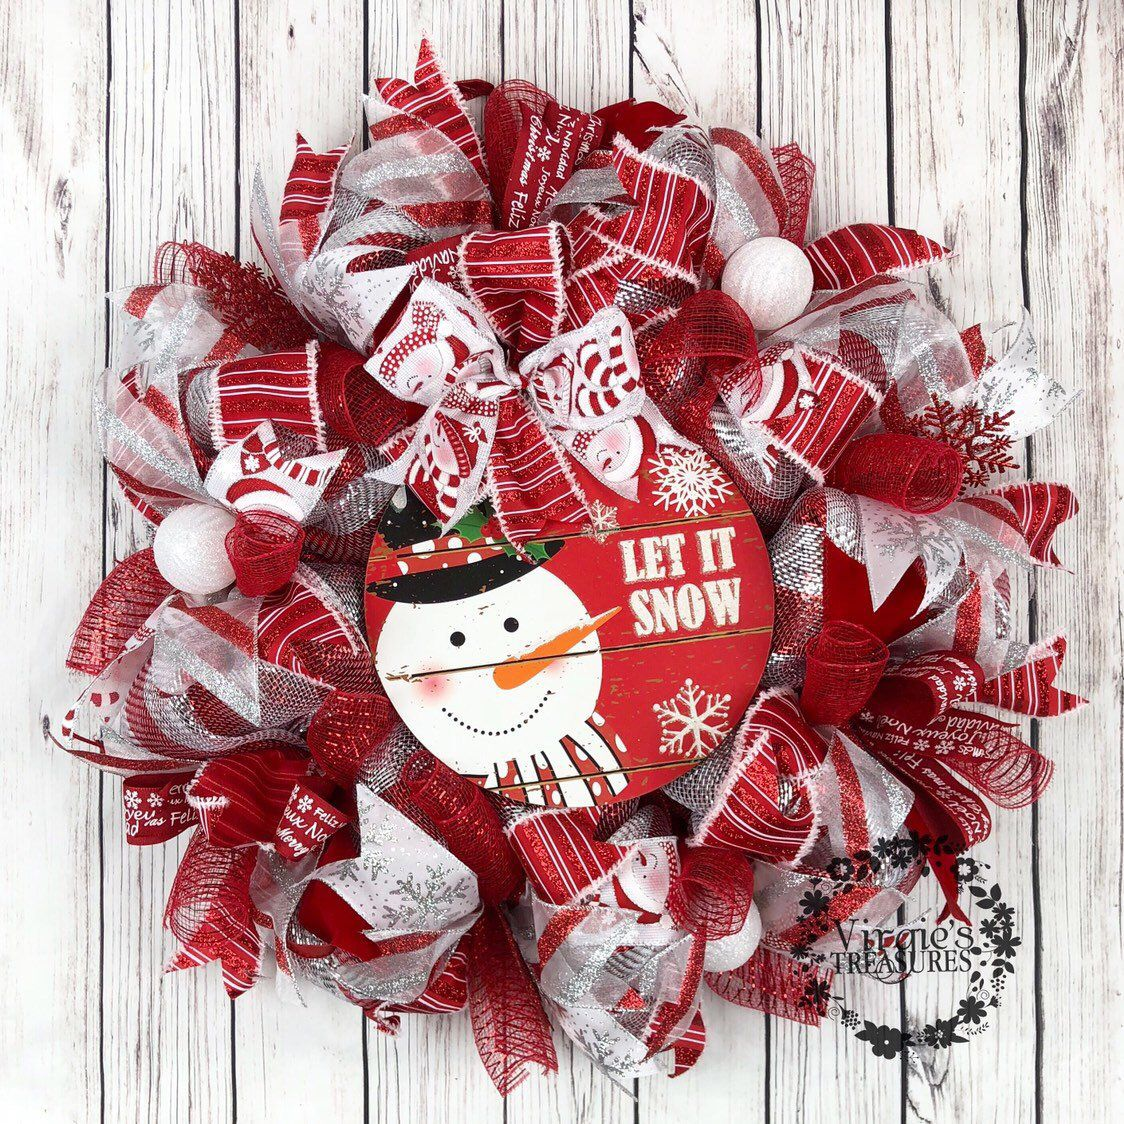 Excited To Share This Item From My Etsy Shop Red And Silver Christmas Wreath Red And White Holiday Wreath Christmas Wreath Sn Christmas Wreaths Silver Christmas Holiday Wreaths